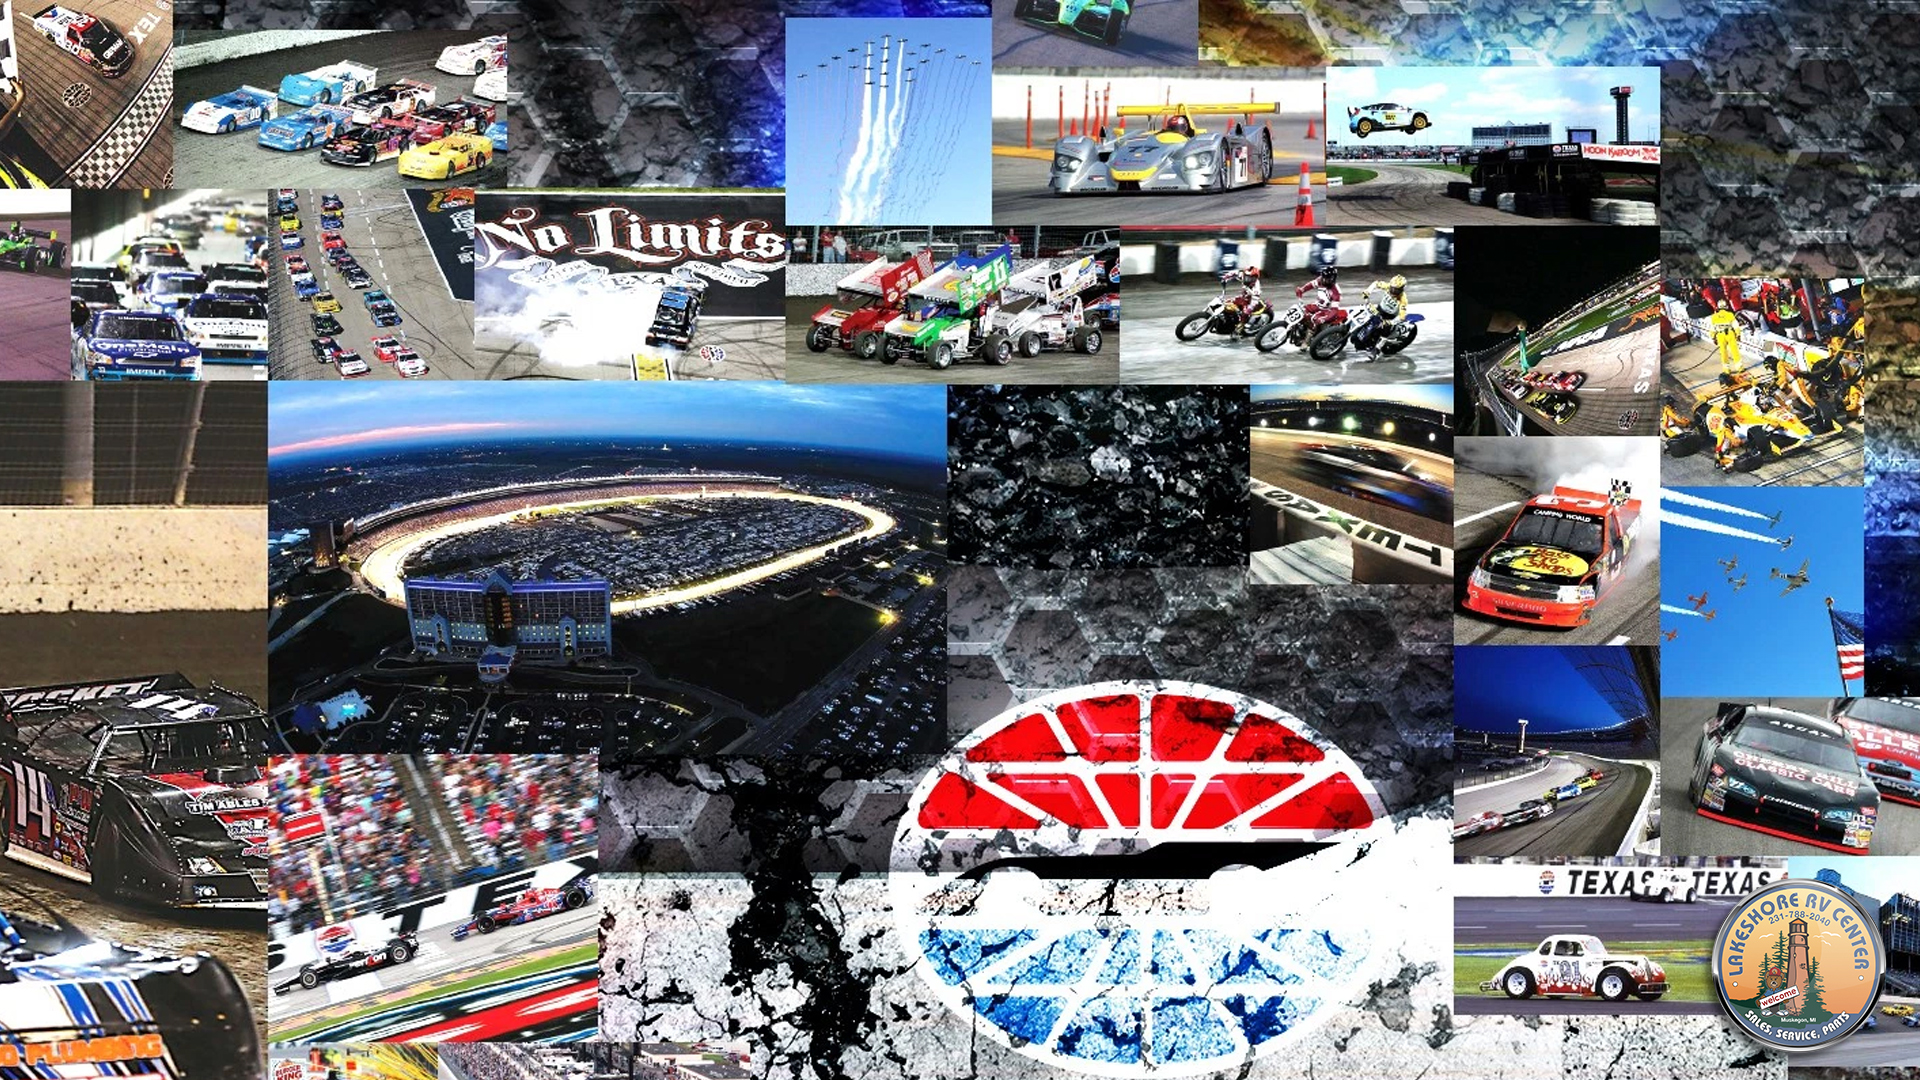 Camping Options For Texas Motor Speedway Lakeshore RV Blog - Texas motor speedway car show